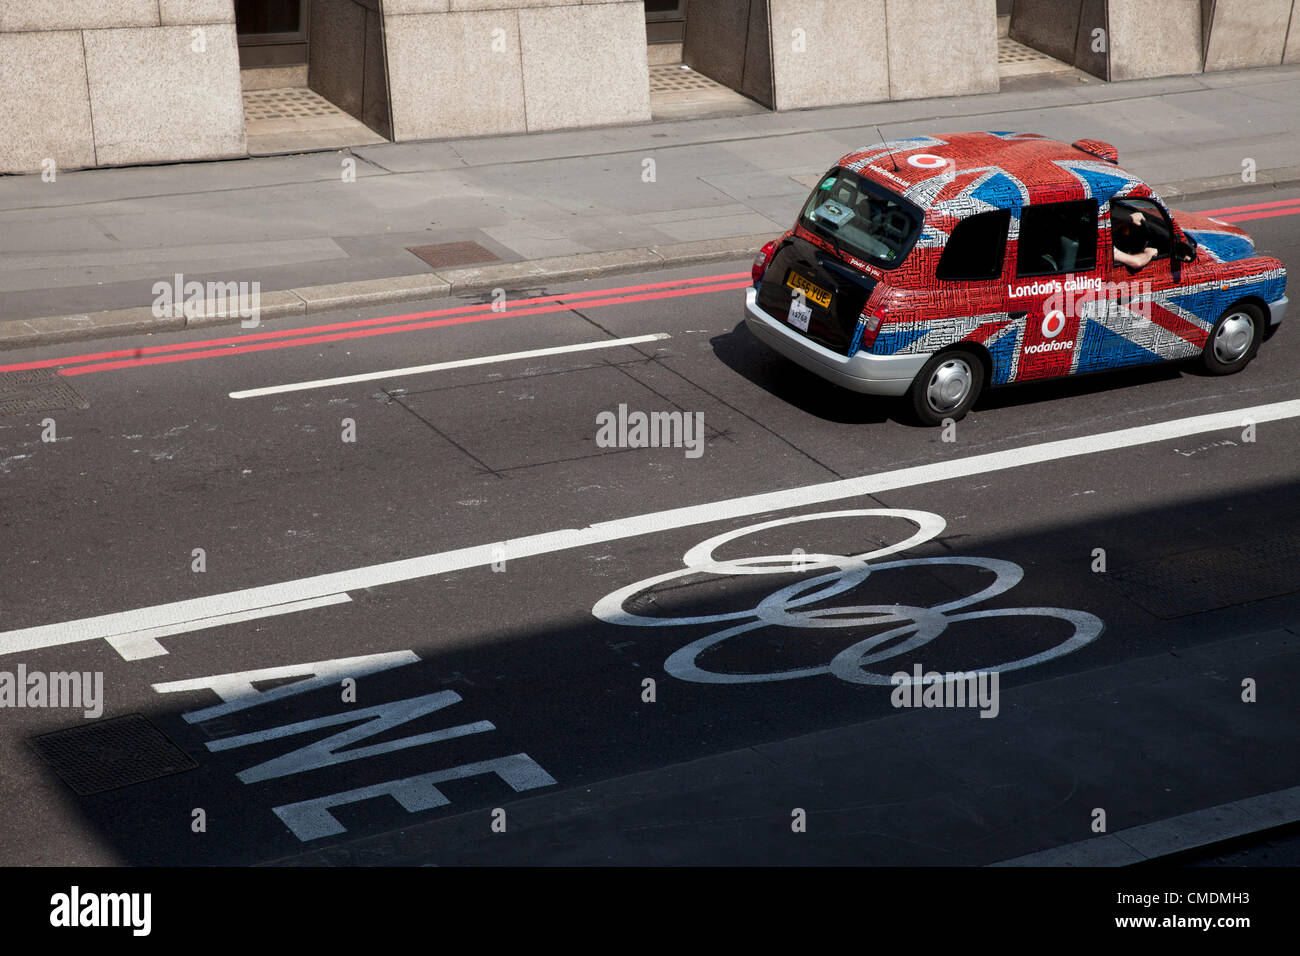 London, UK. Wednesday 25th July 2012. Games lanes on the Olympic Route Network. Transport is a huge issue in and - Stock Image